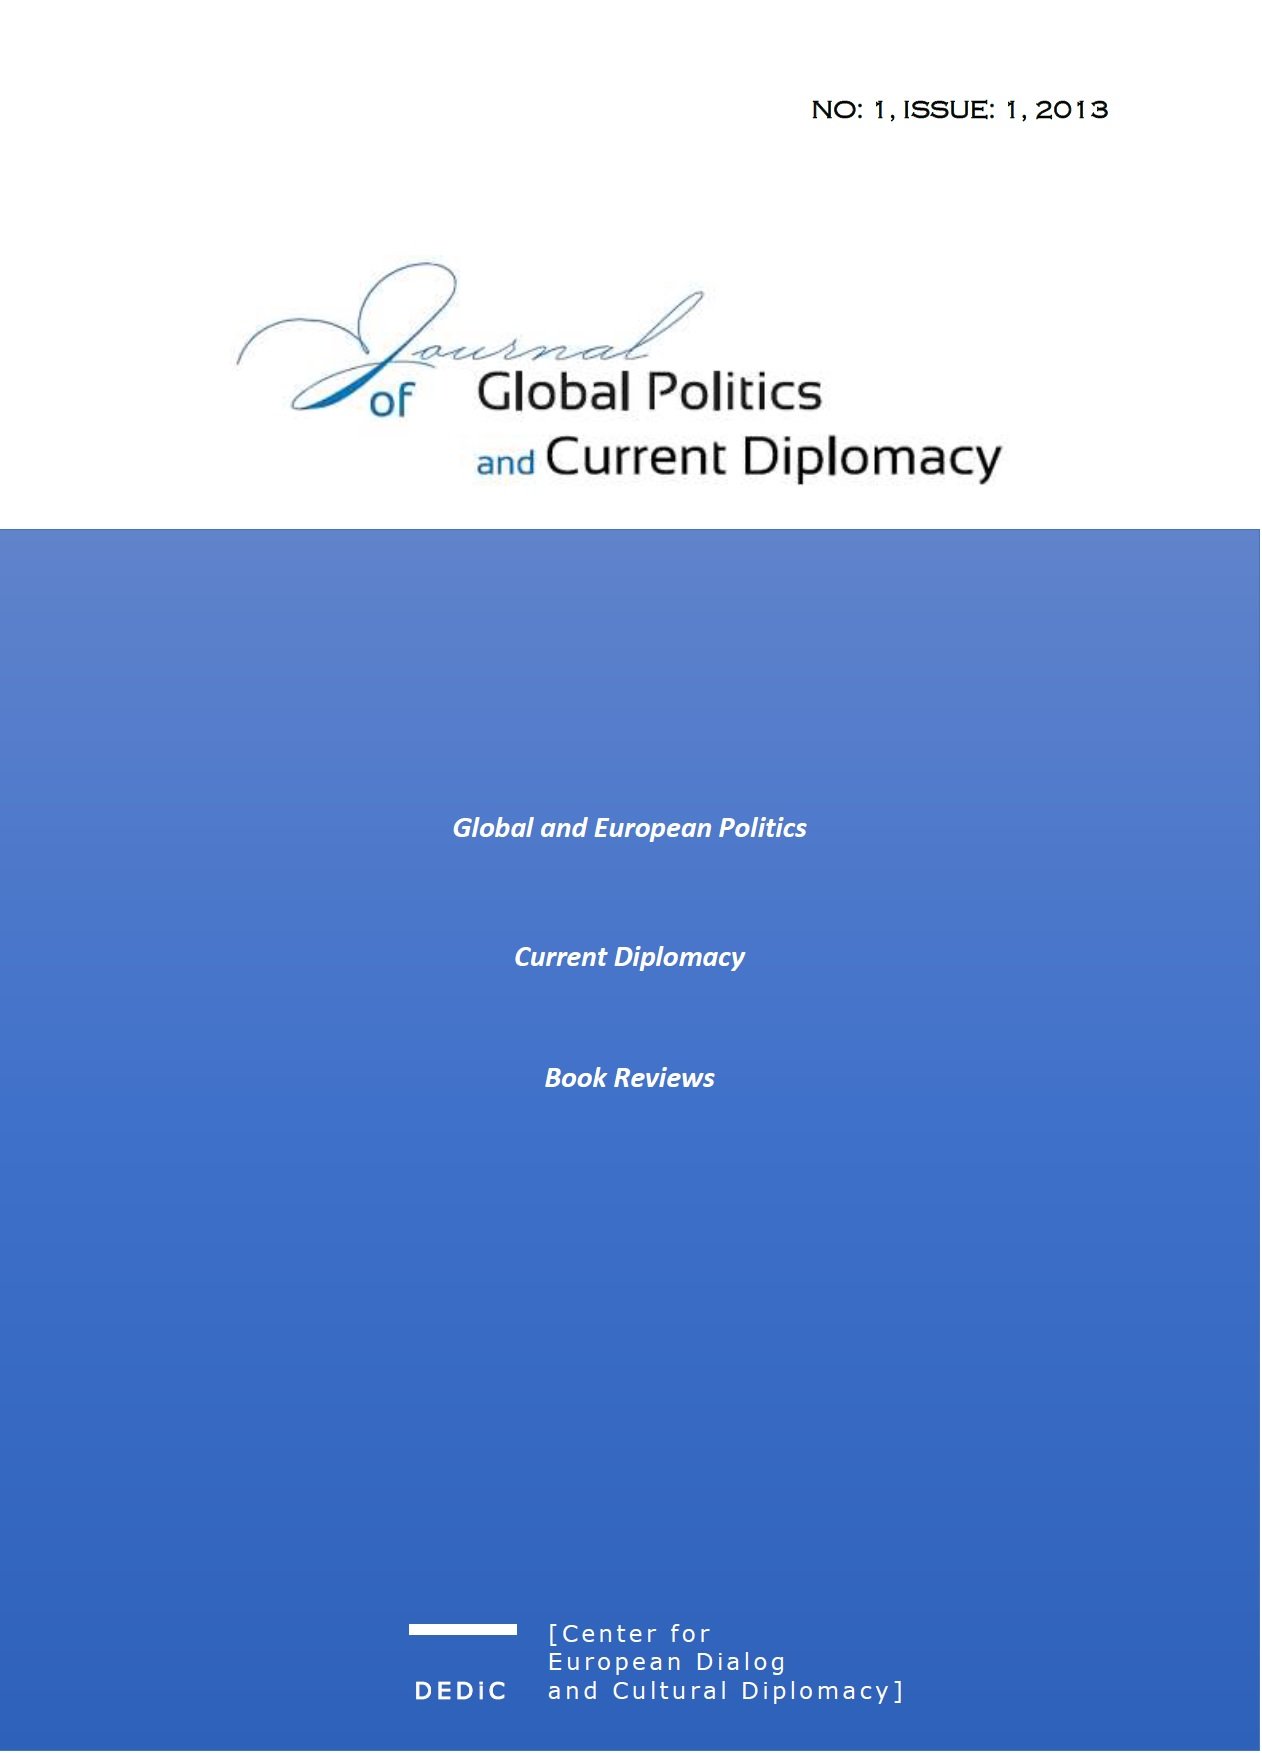 Journal of Global Politics and Current Diplomacy